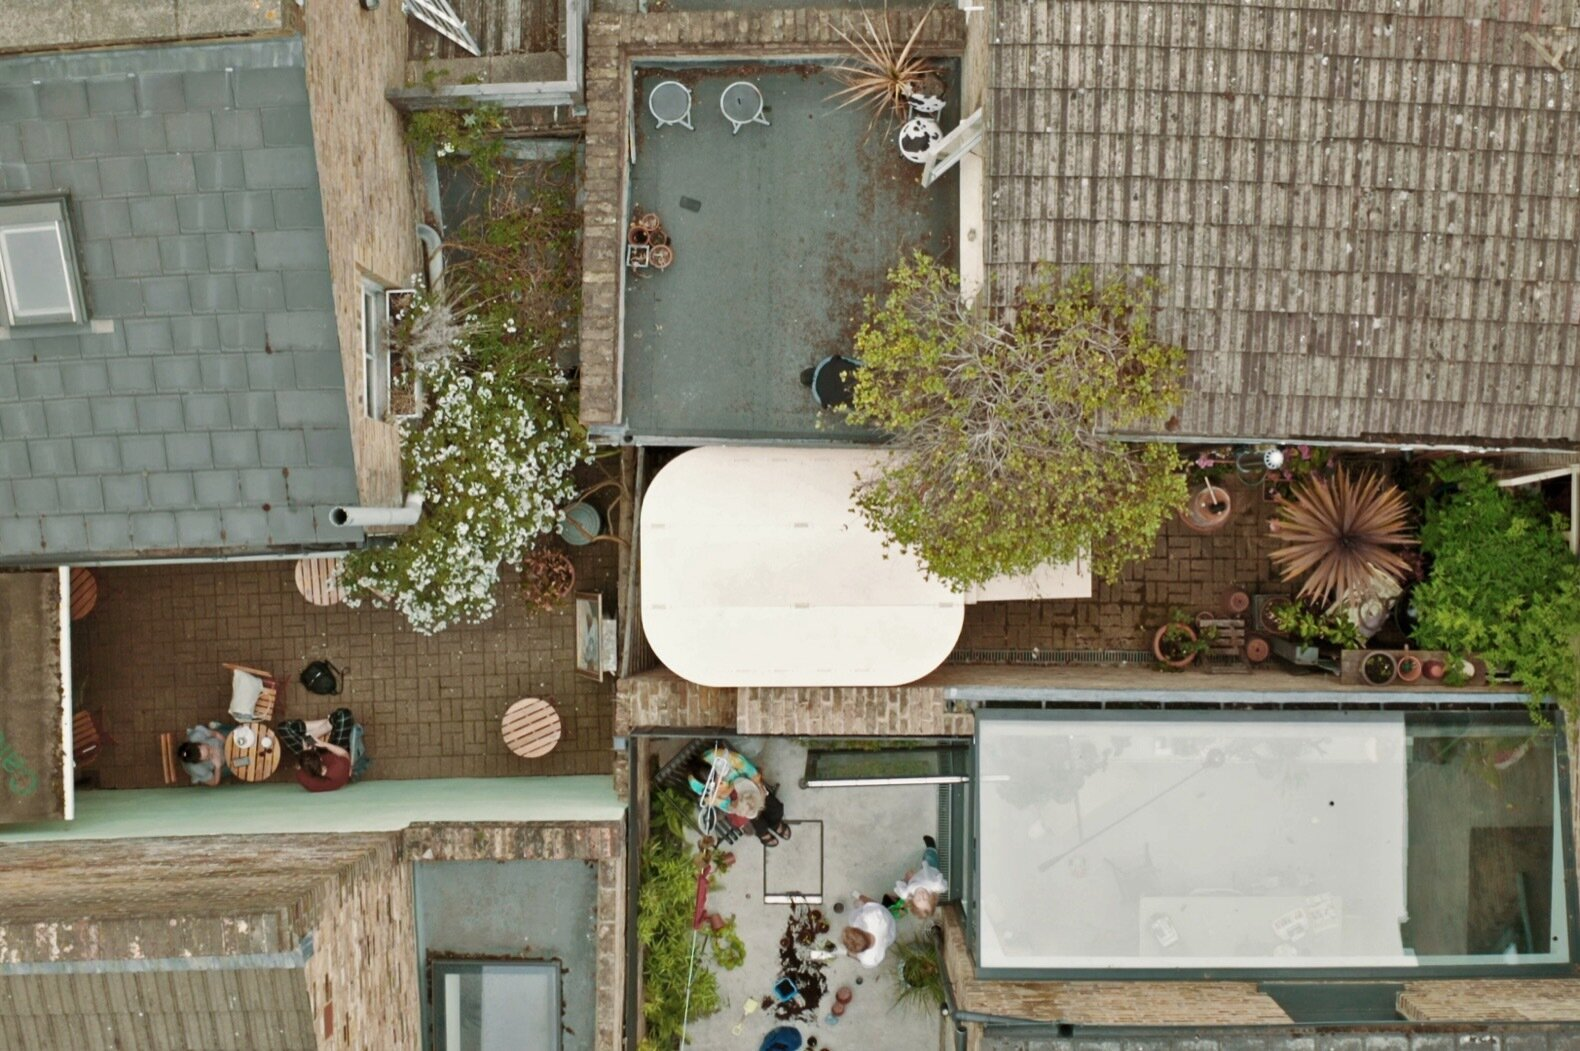 My Room in the Garden aerial view